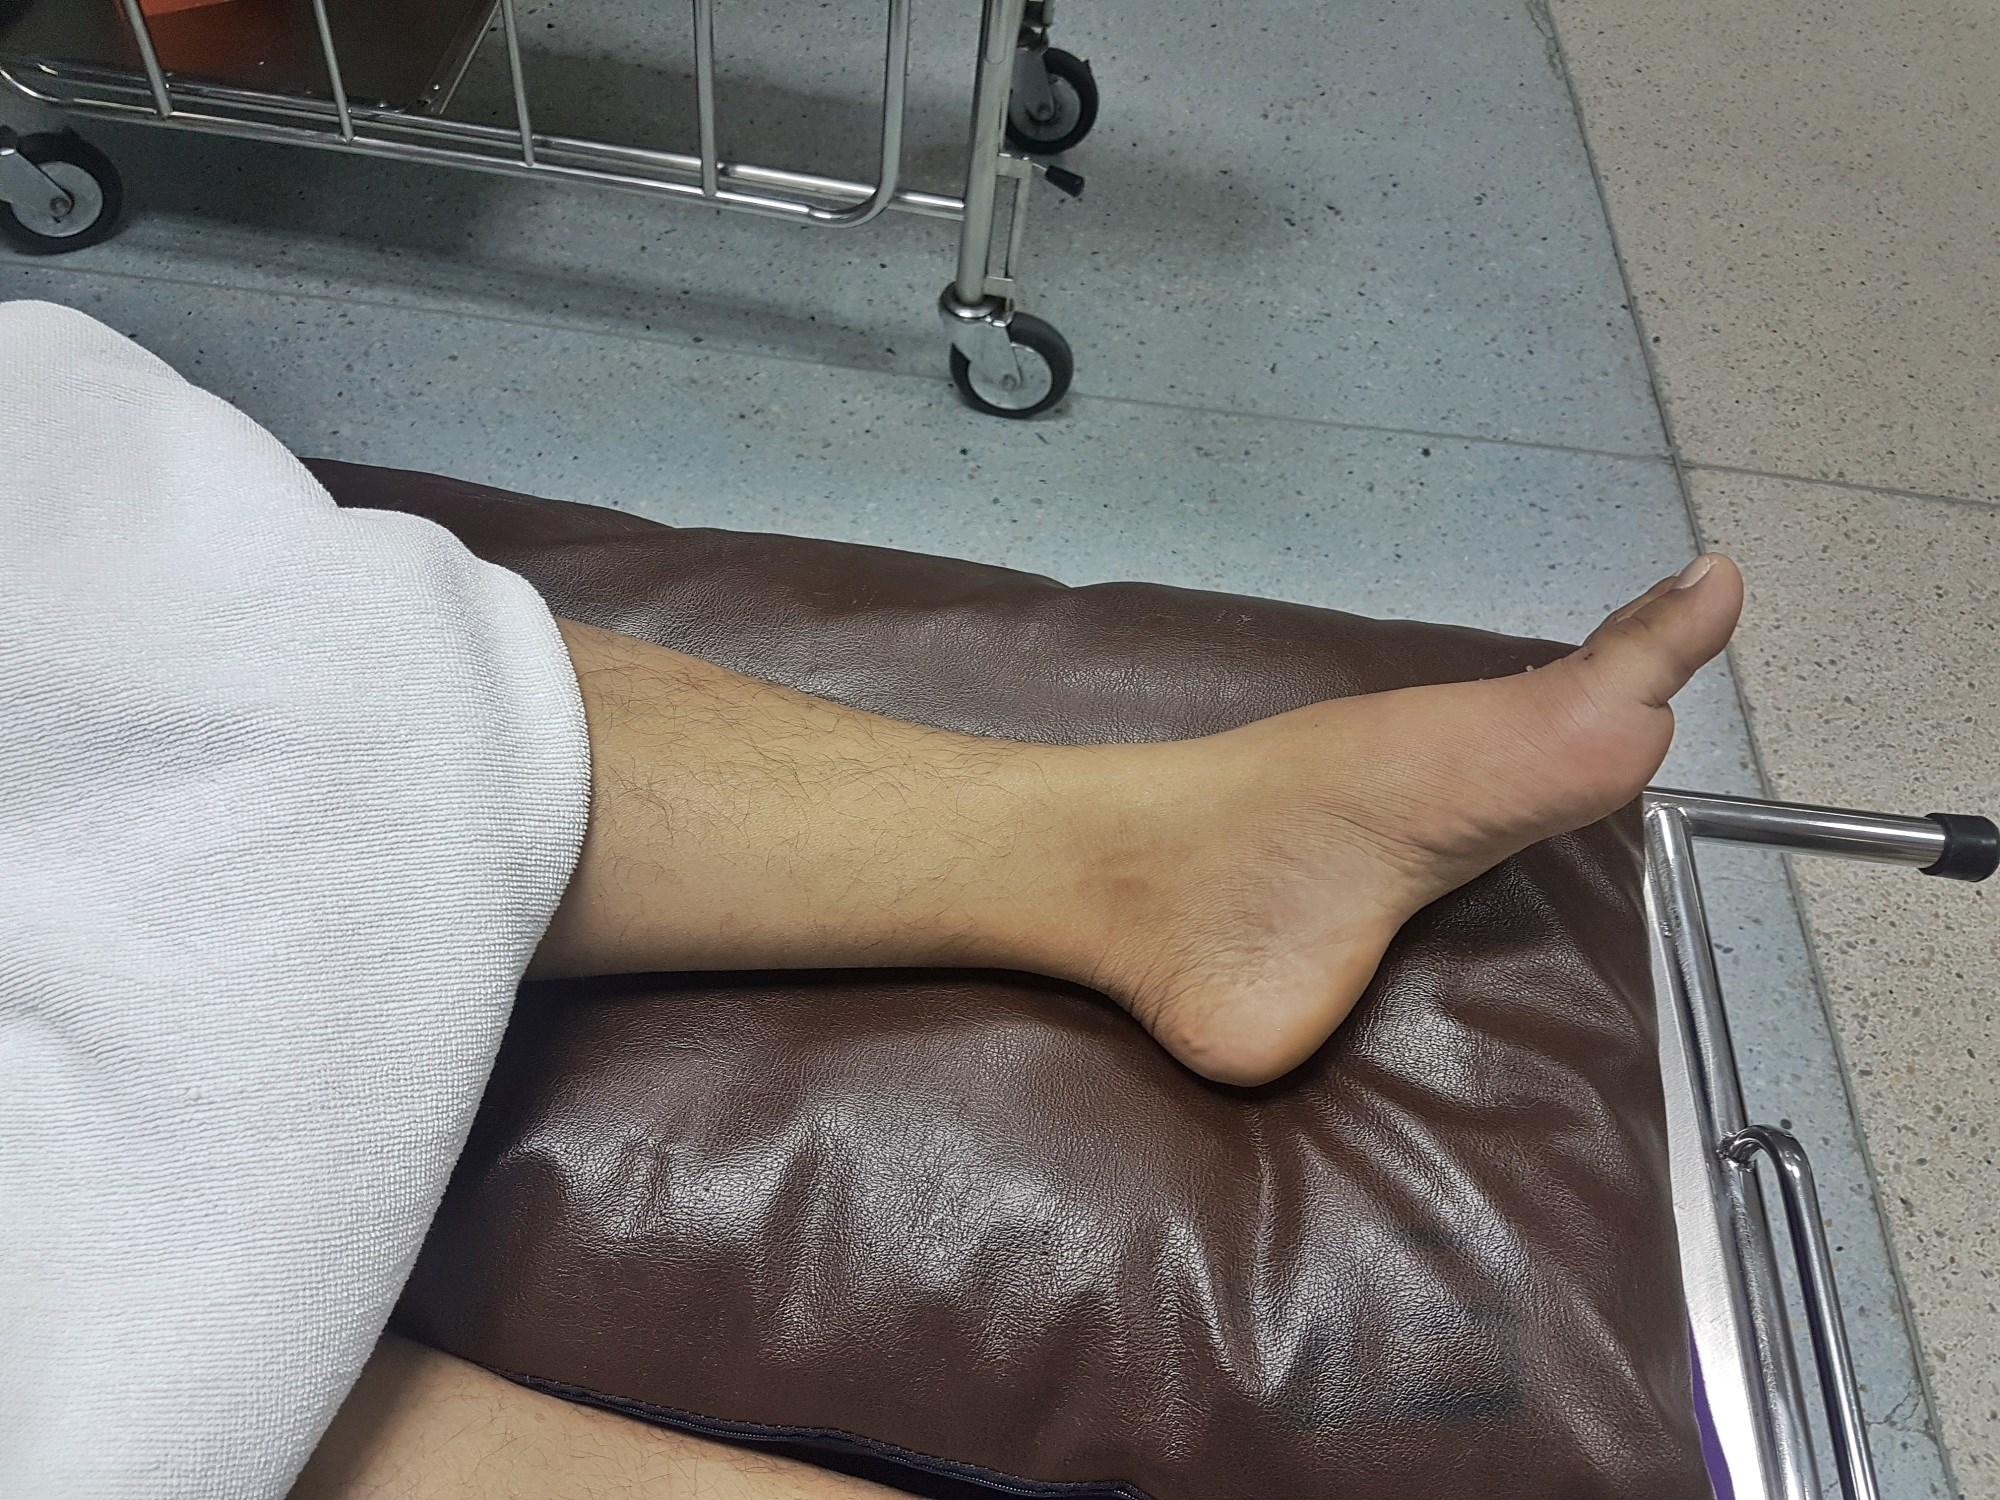 The factors most significantly associated with bone erosion were duration of gout, age, synovial hypertrophy, and presence and number of tophi.